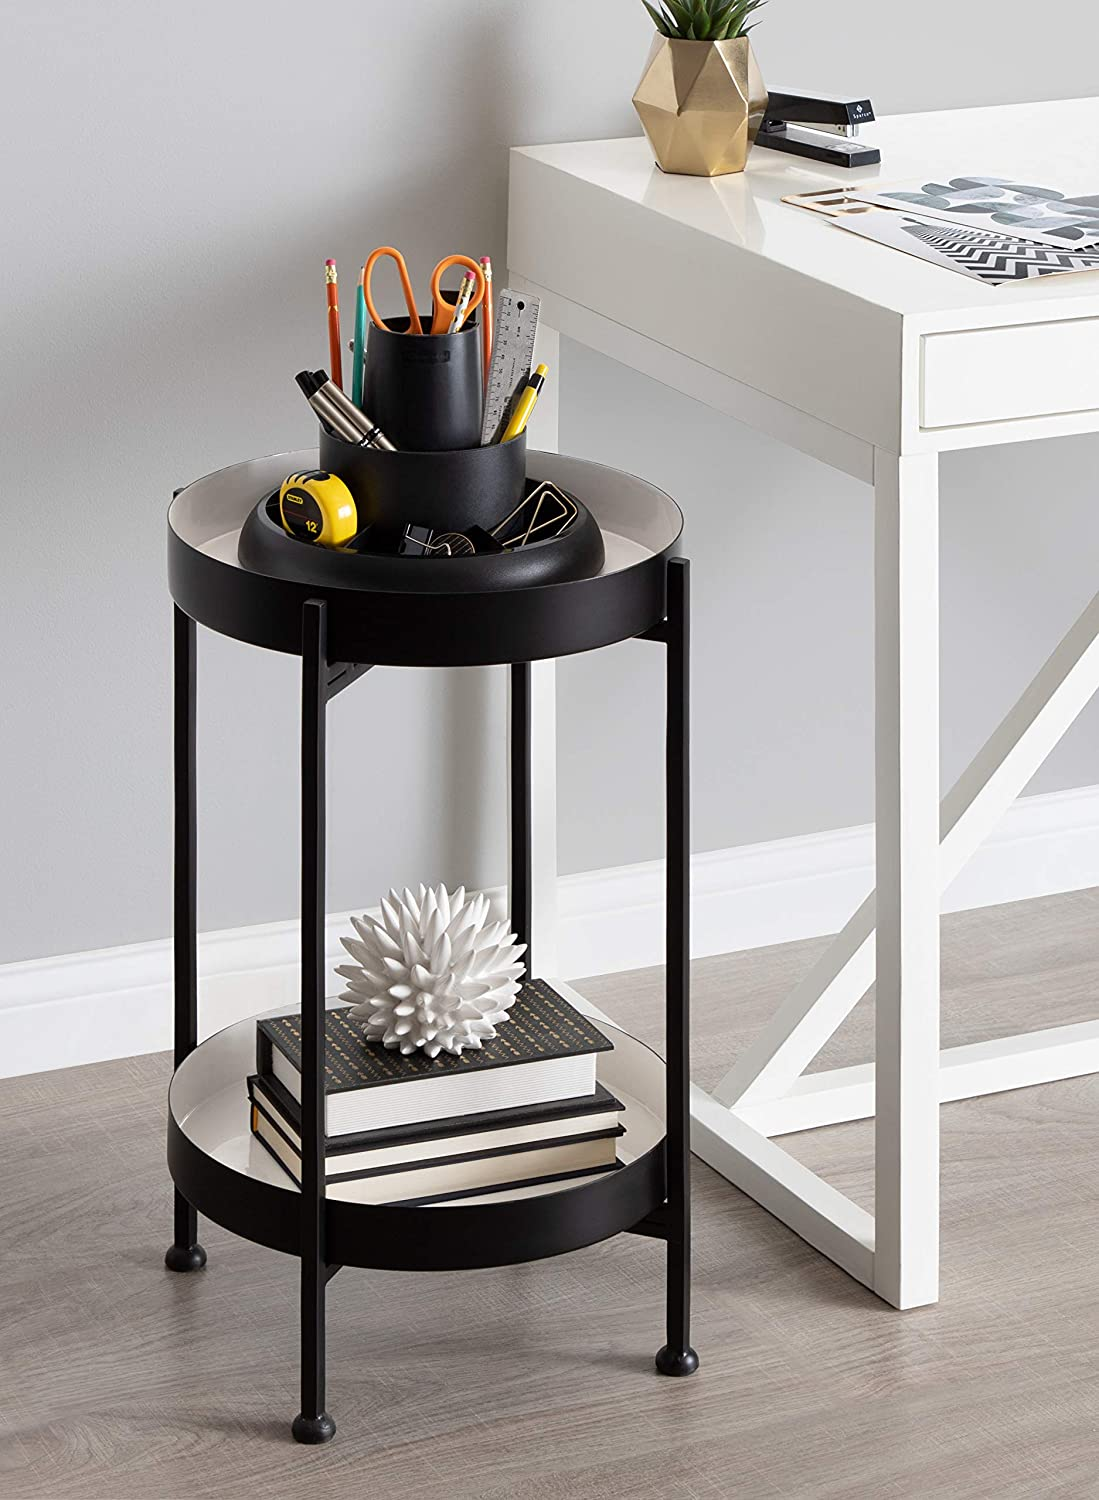 Kate and Laurel Nira Two-Tiered Metal Side Table, 15x15x24, Black/White